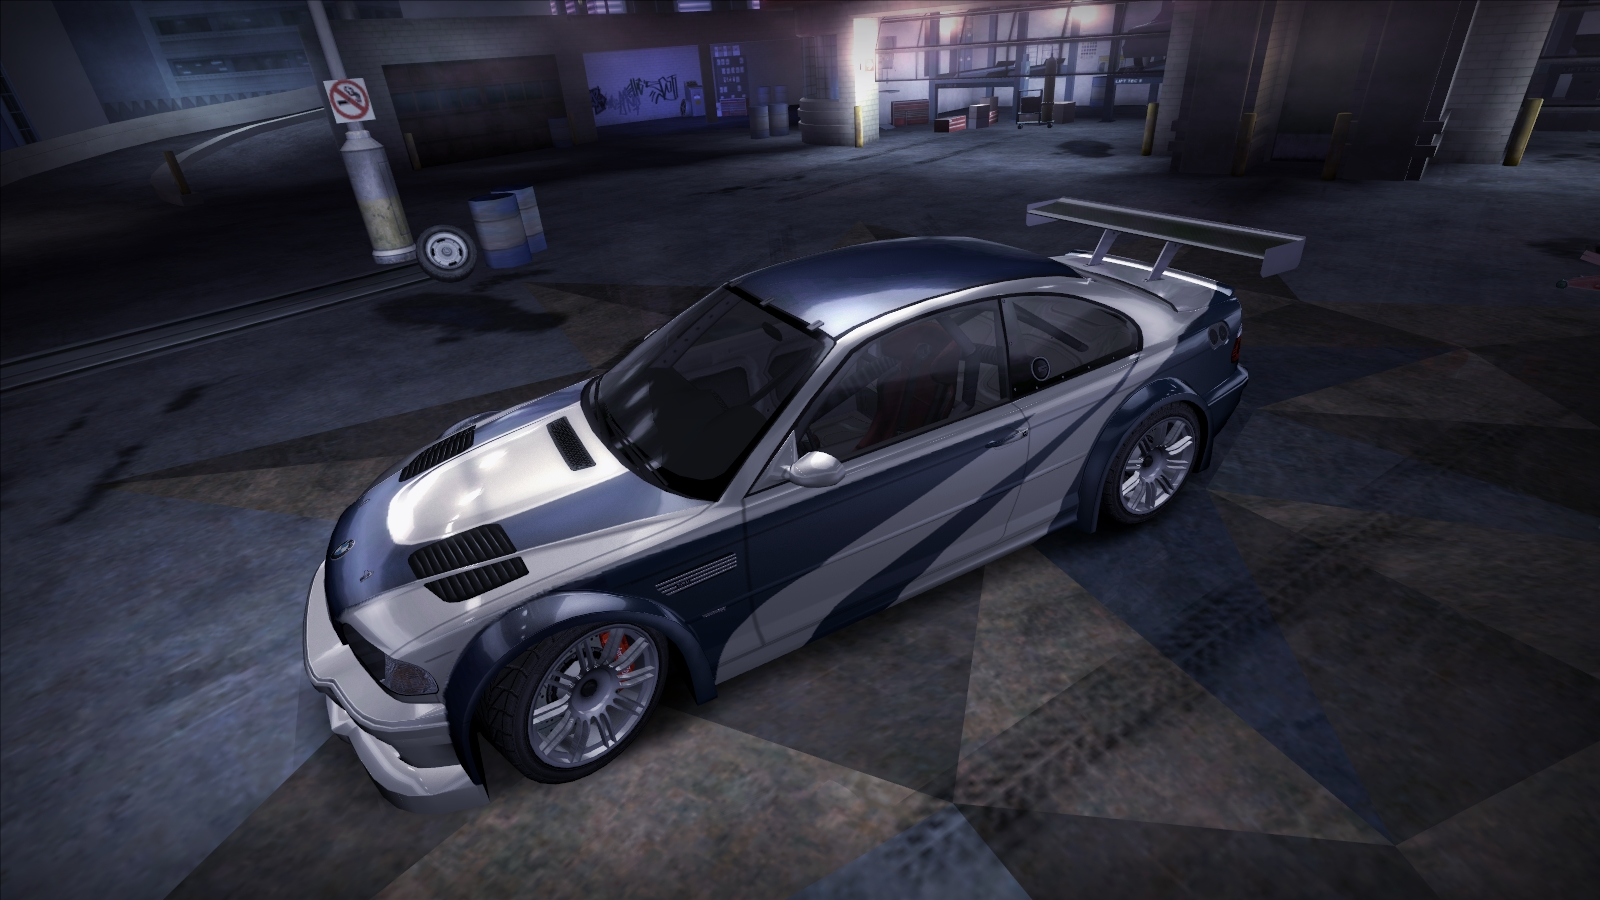 My Bmw M3 Gtr E46 With Hero Vinyl From Nfs Most Wanted 2012 Wallpaper Cityconnectapps